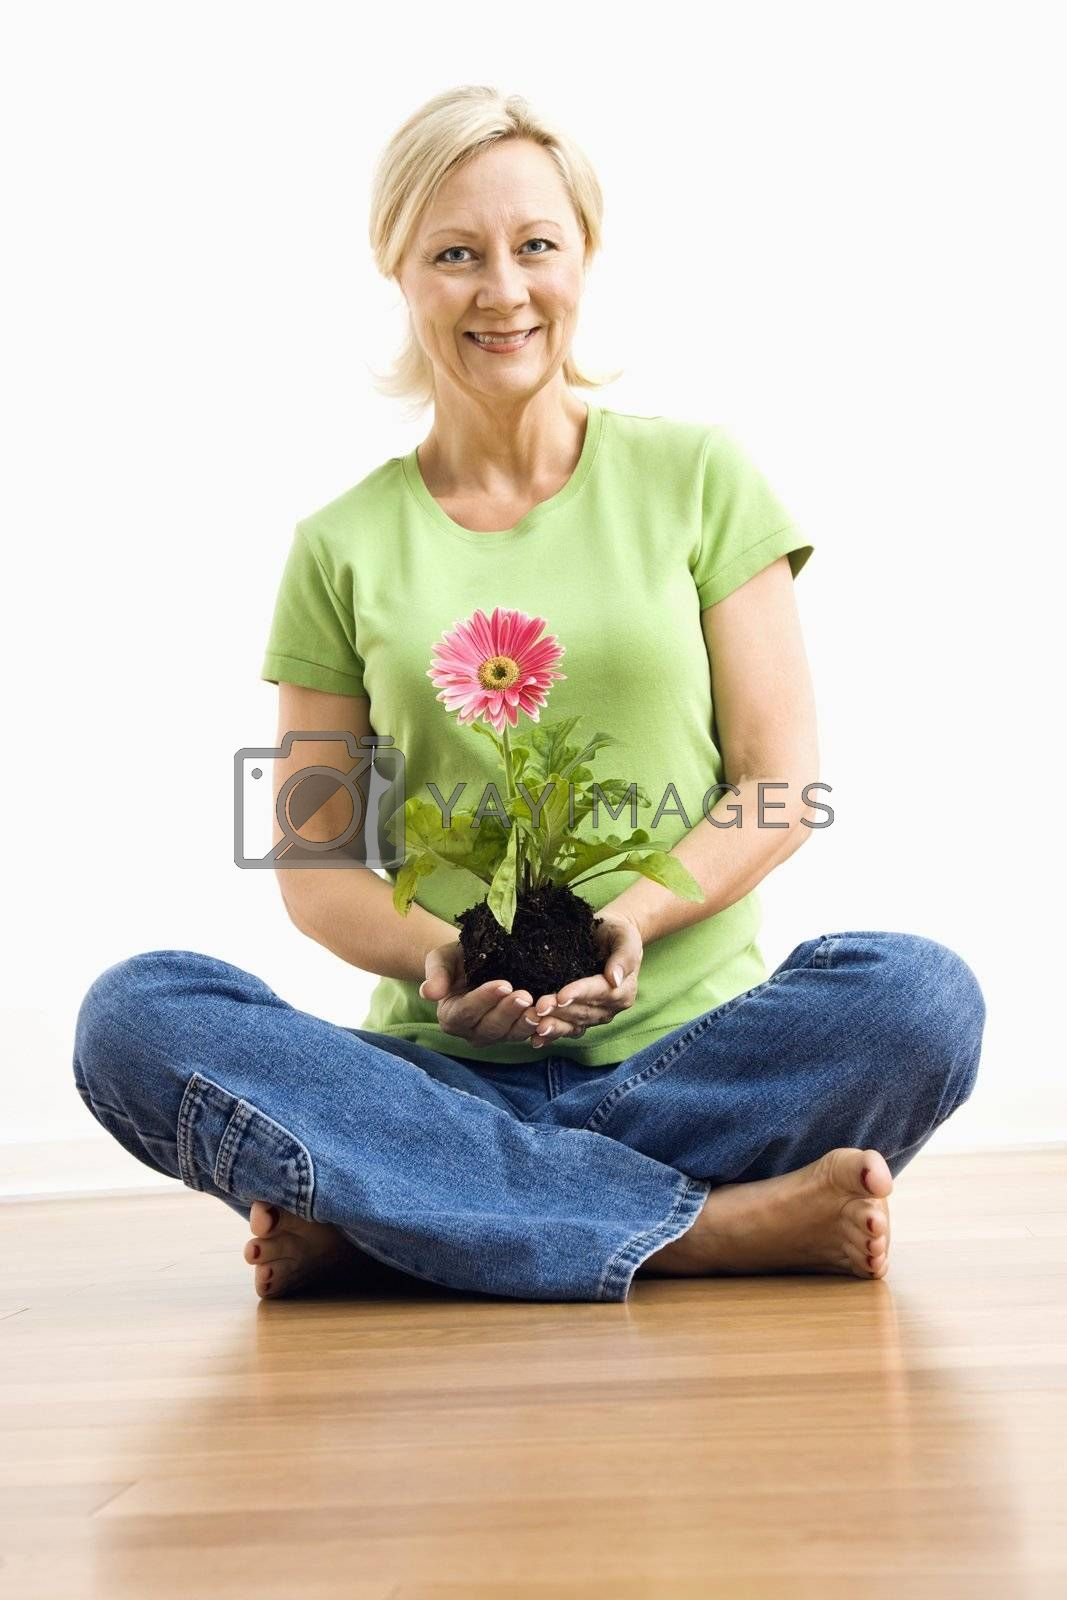 Portrait of smiling adult blonde woman sitting on floor holding pink gerber daisy plant.